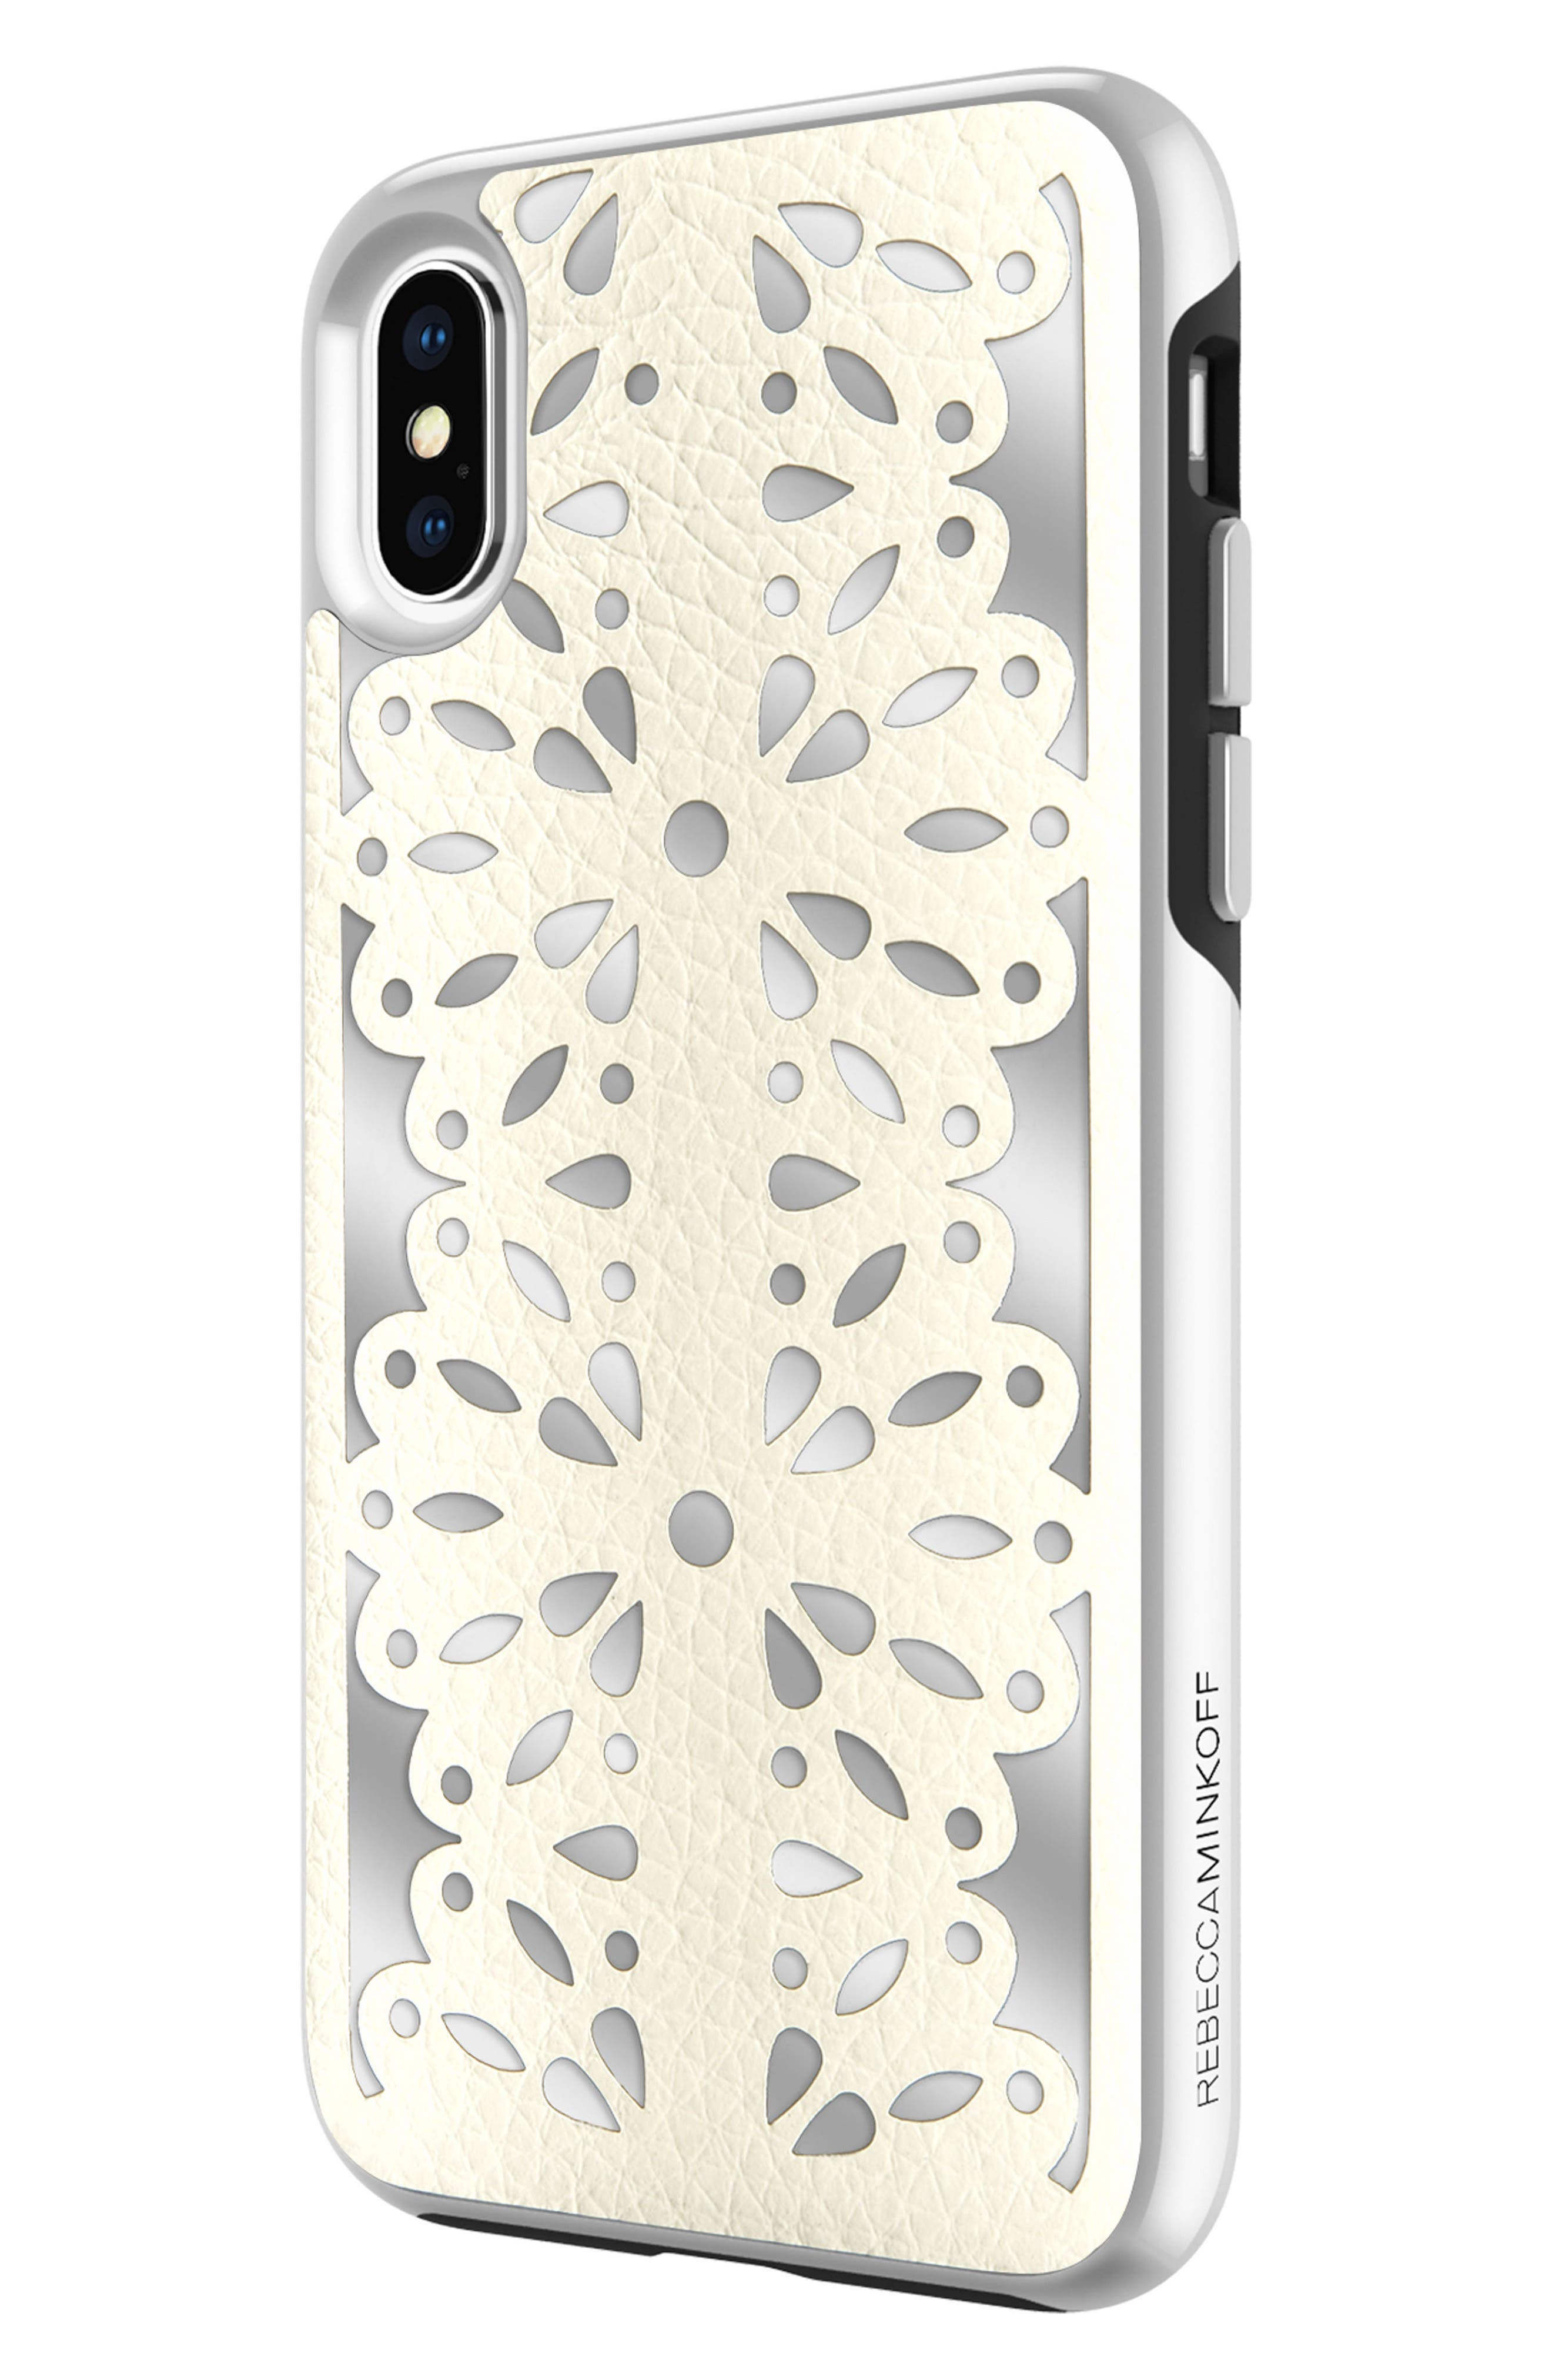 Luxury Calls Laser Lace iPhone X Case,                             Alternate thumbnail 4, color,                             Bianco/ Silver